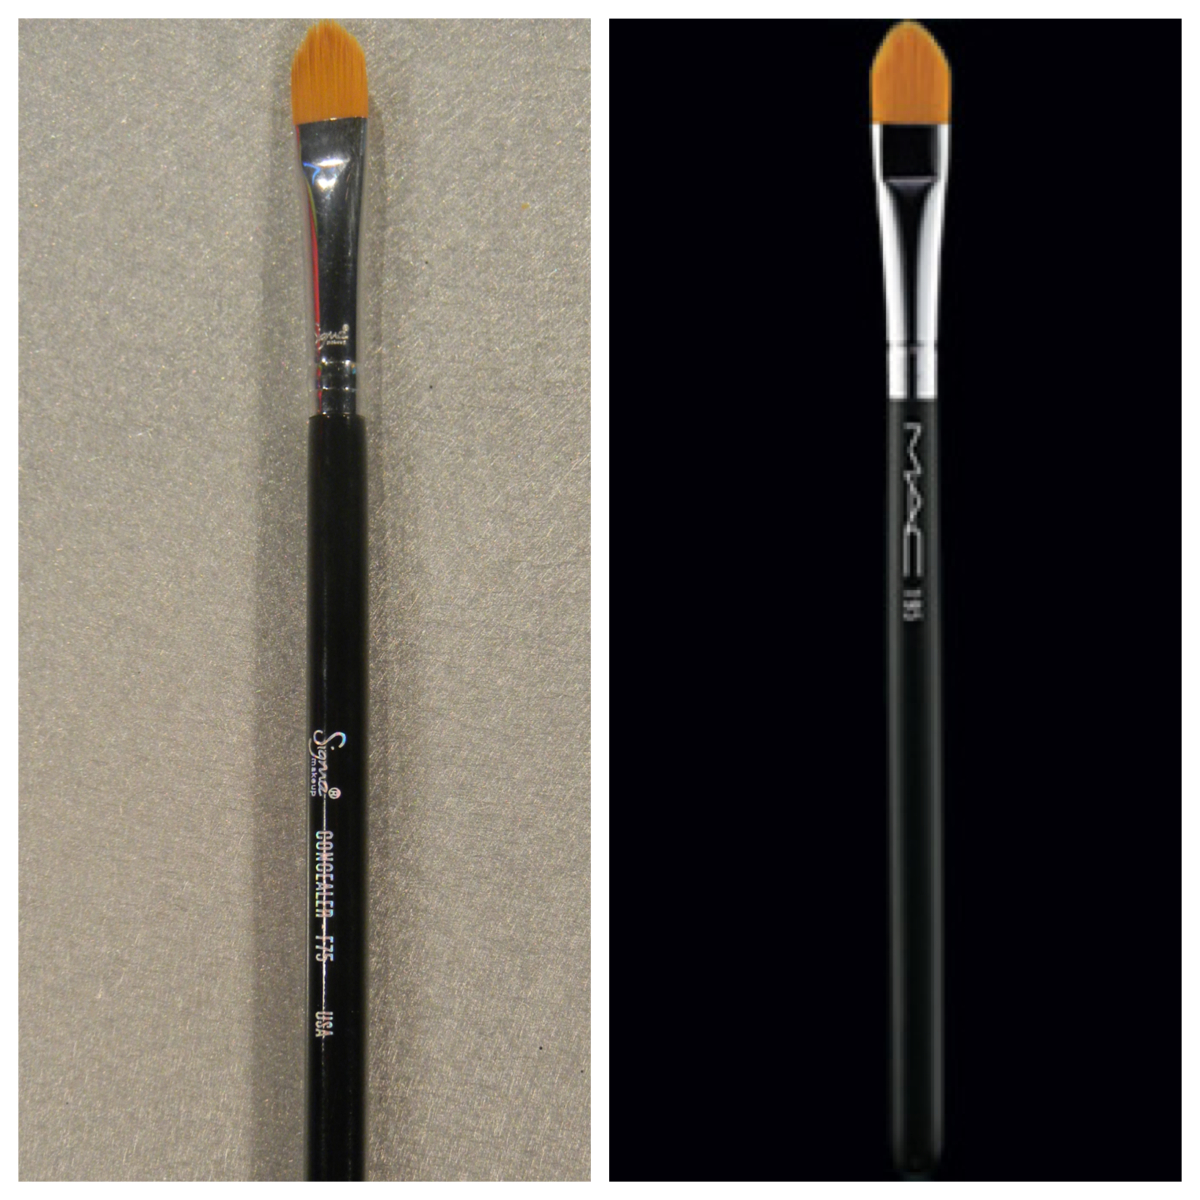 sigma brushes vs mac. f75 vs mac 195- i use this brush to apply concealer under my eyes for highlighting. also it the shape and highlight eyebrows. sigma brushes mac